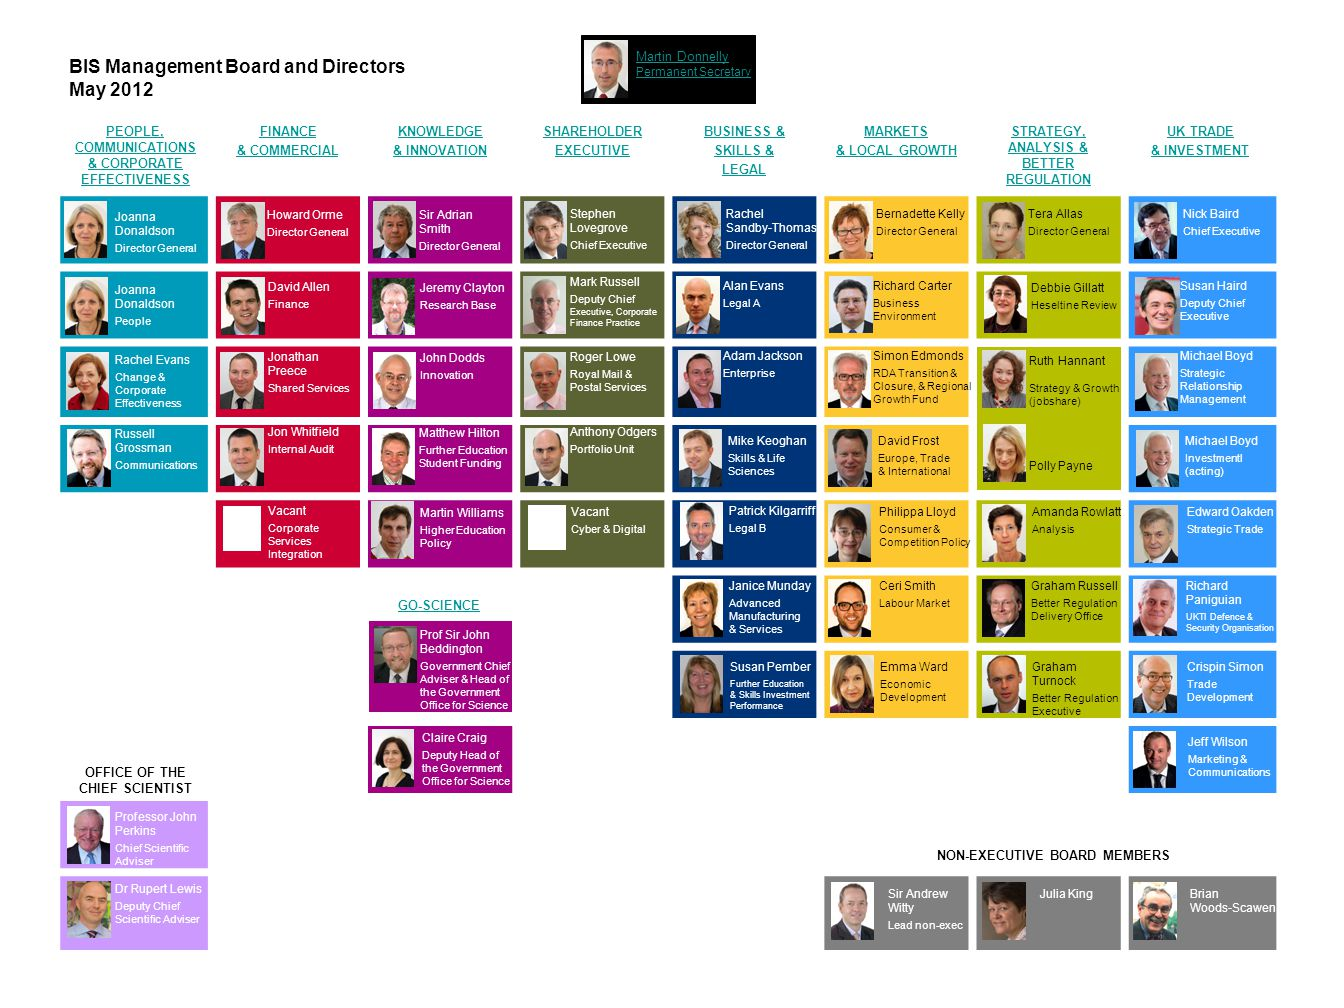 BIS Management Board and Directors May 2012